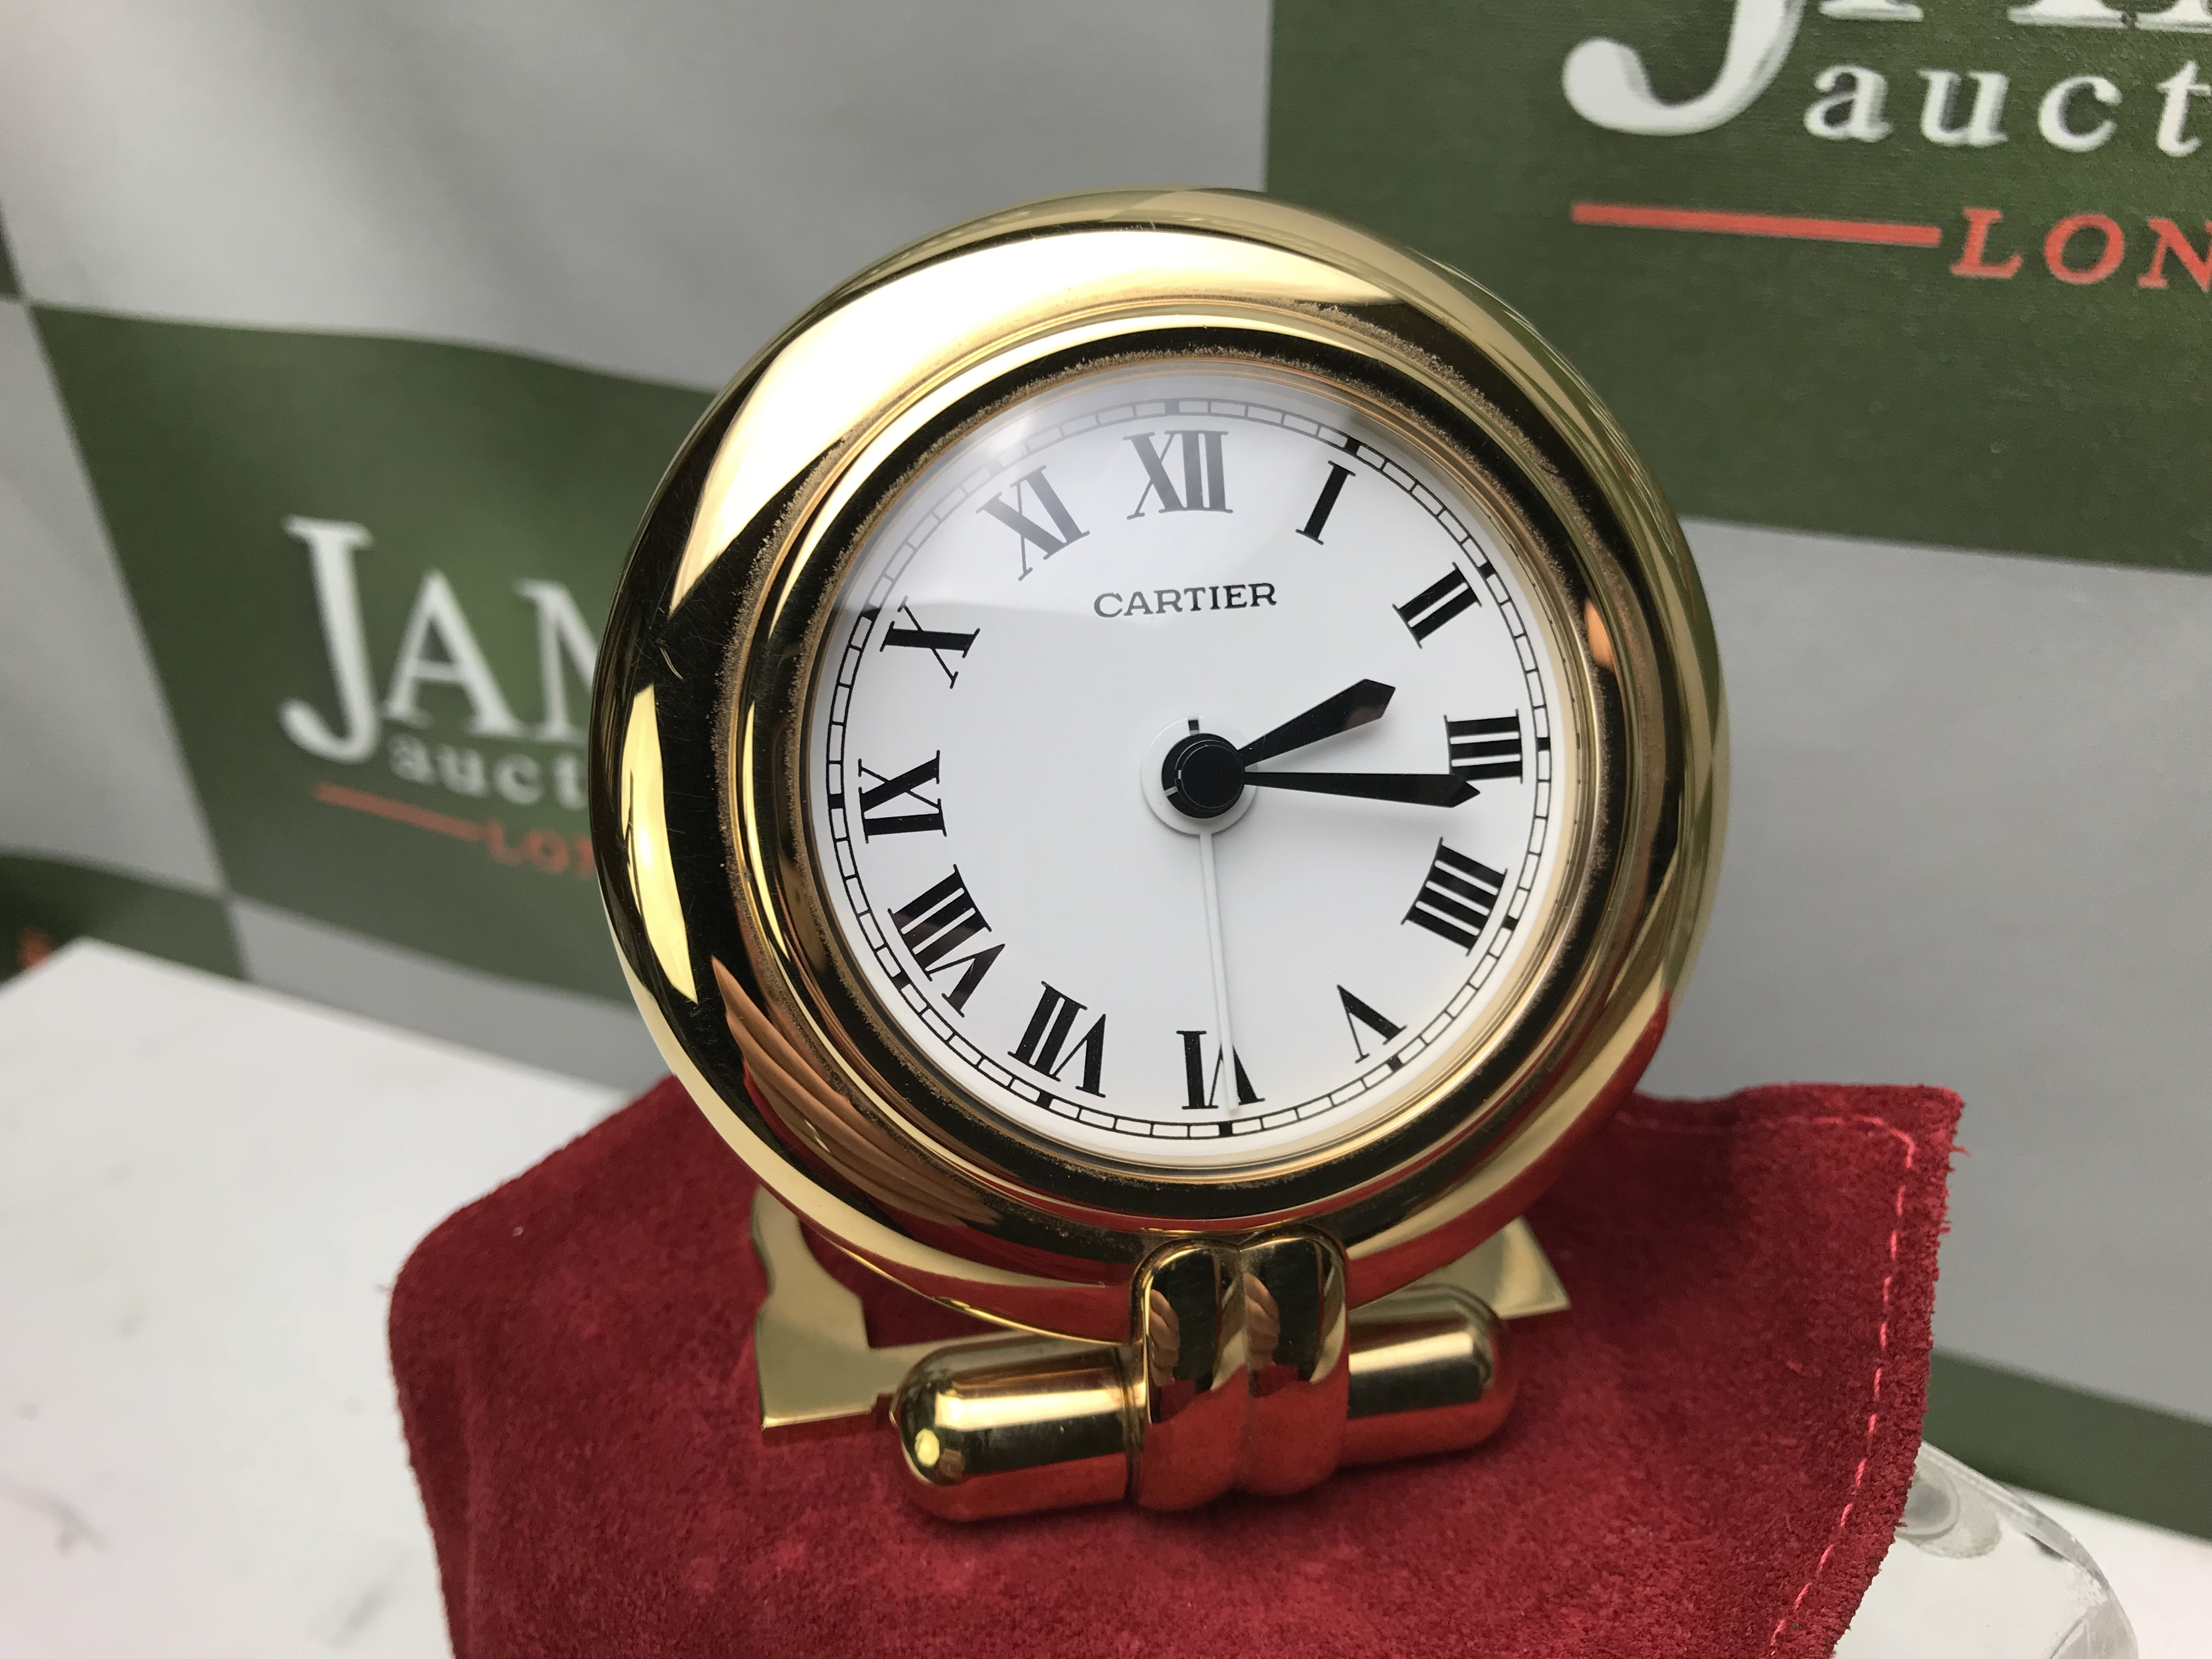 Lot 22 - Cartier Rivoli Gold Plated Large Travel Clock